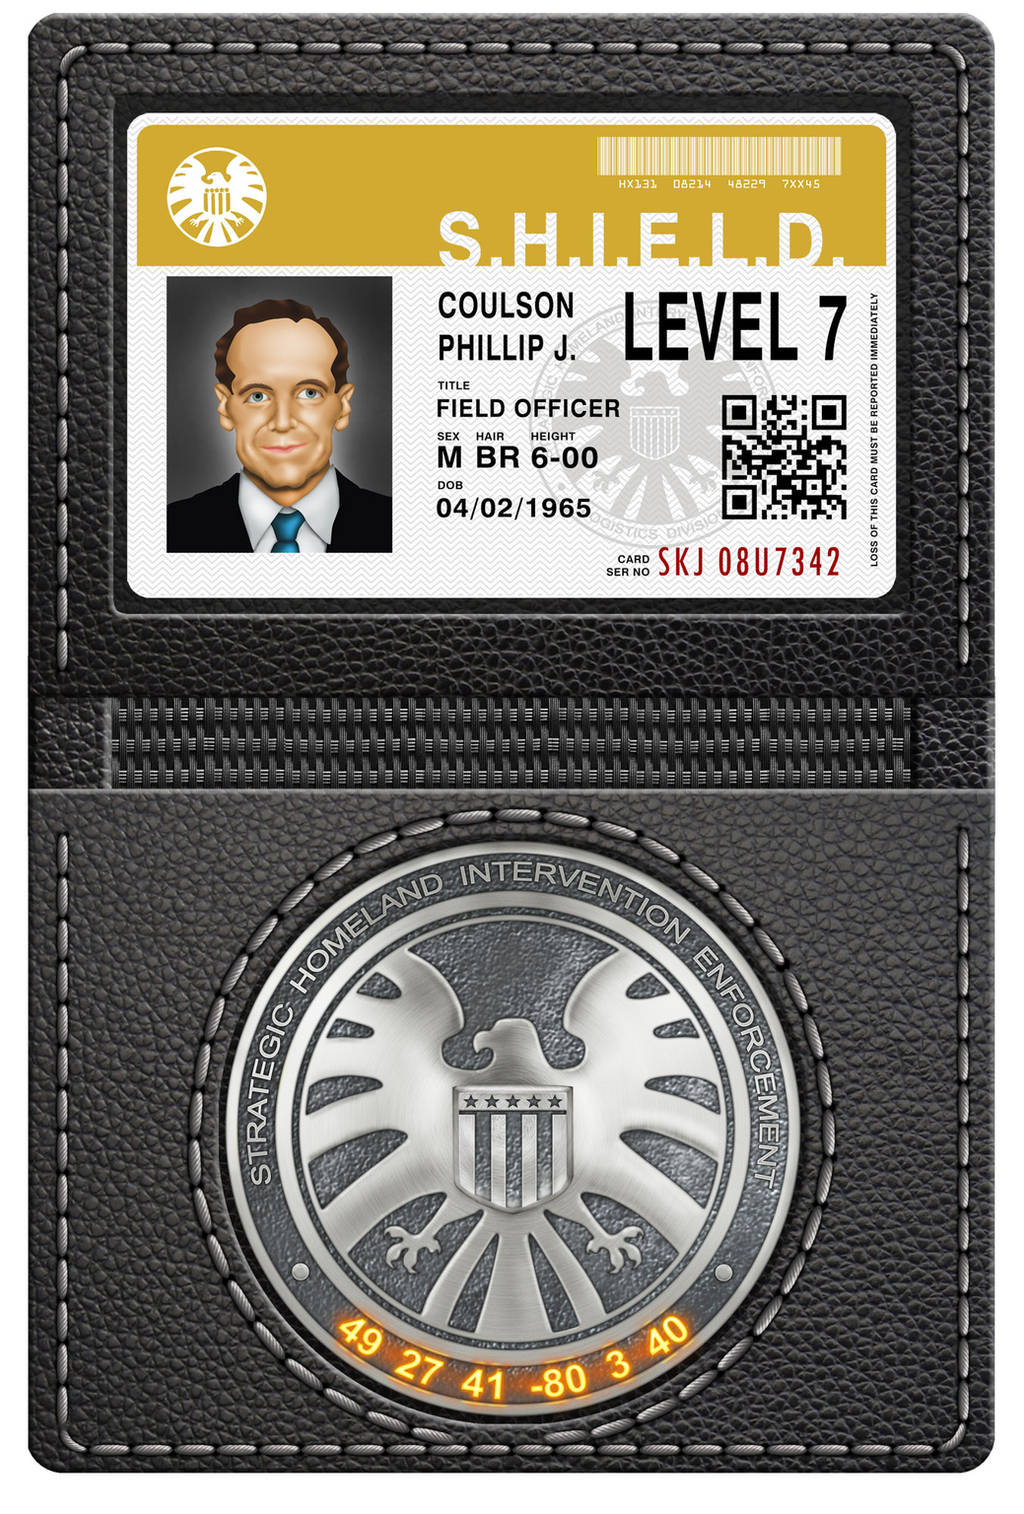 Marvel-Agents-of-SHIELD-Phil-Coulson-ID--badge-by by Dom-Graphcom